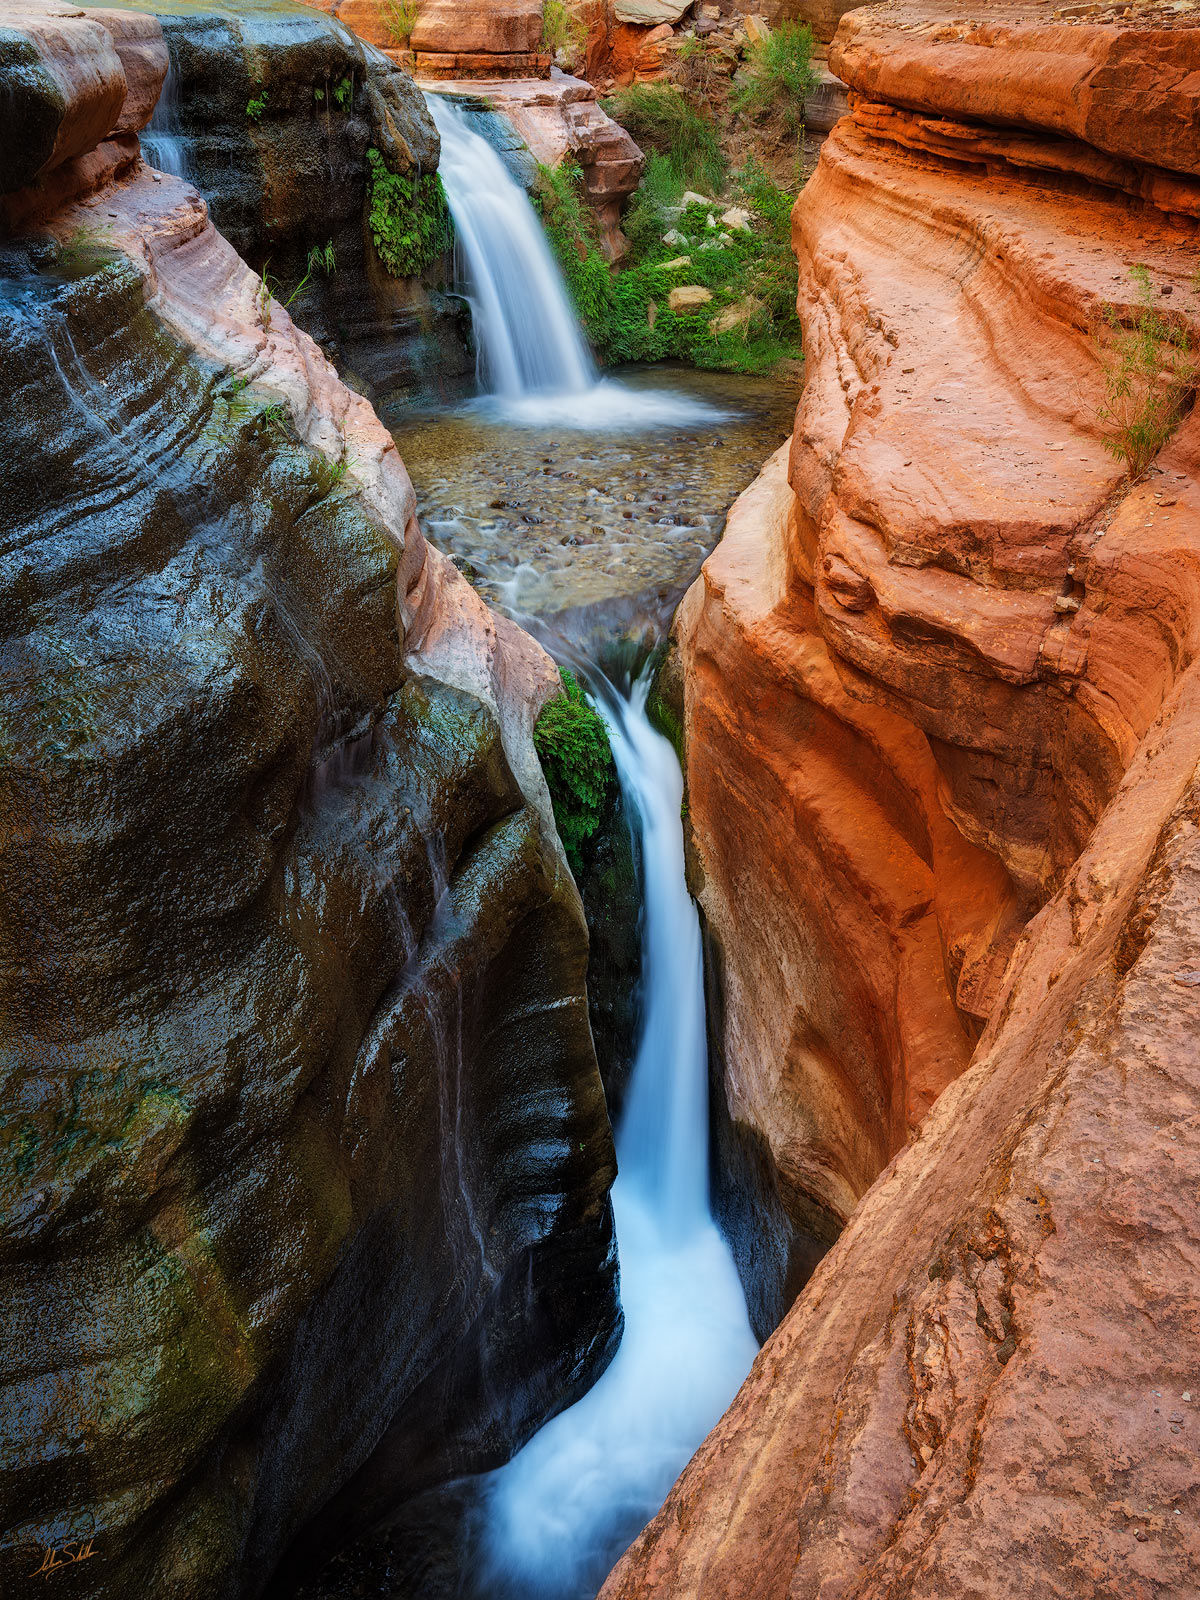 Deer Creek, Expedition, FujiFilm, GFX, GFX 100, Grand Canyon, Narrows, National Park, River Trip, The Patio, Waterfall, photo